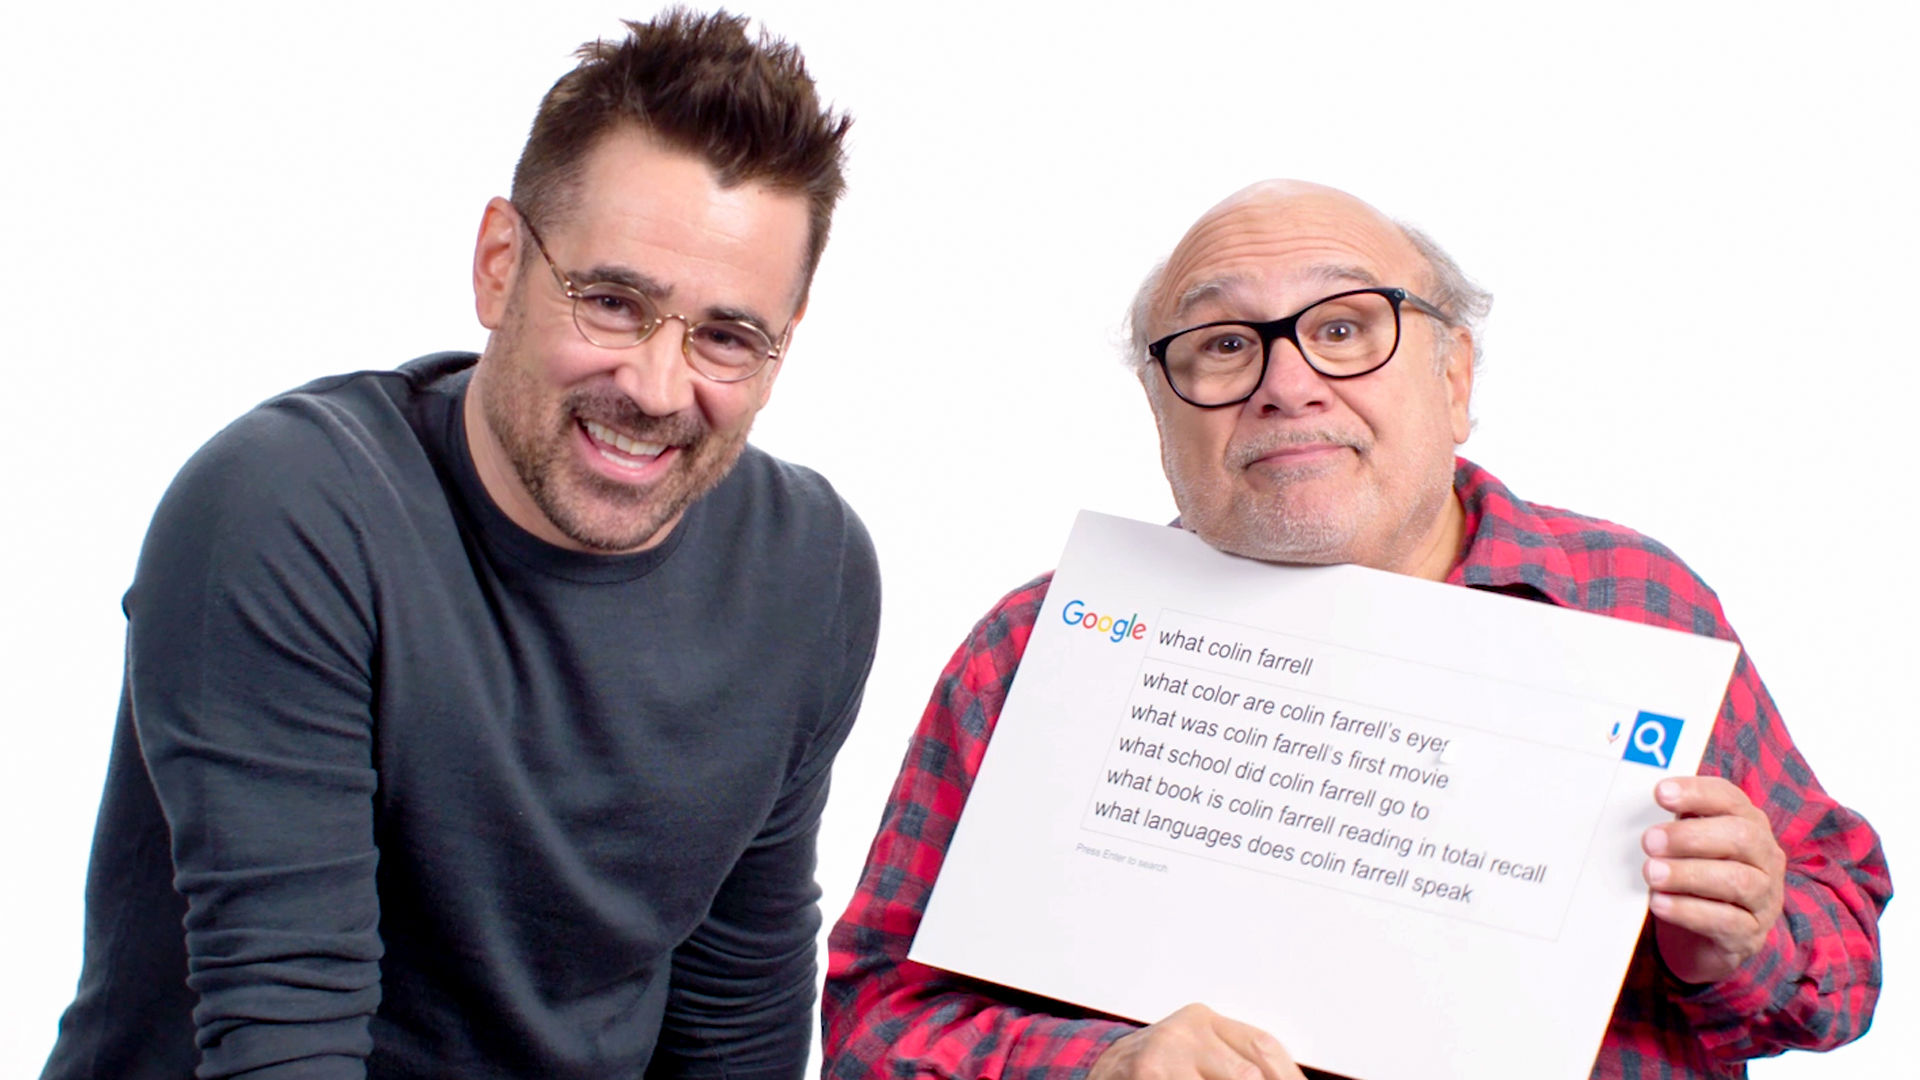 Over 15,000 Marvel Fans Are Petitioning For Danny DeVito To Be The Next Wolverine